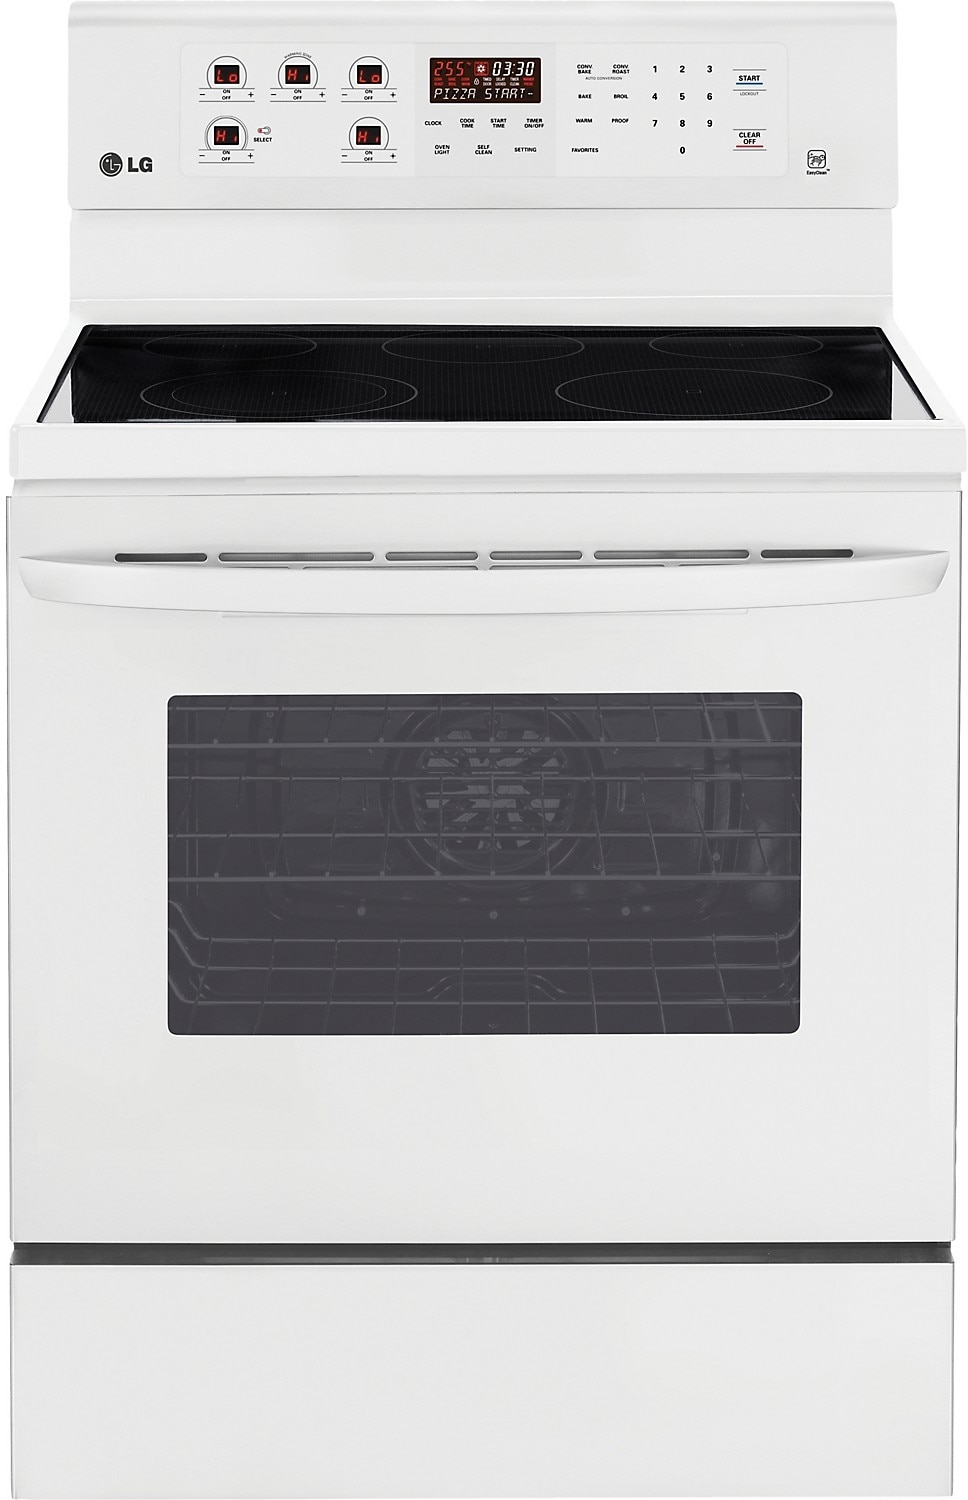 Cooking Products - LG 6.3 Cu. Ft. Freestanding Electric Convection Range - White